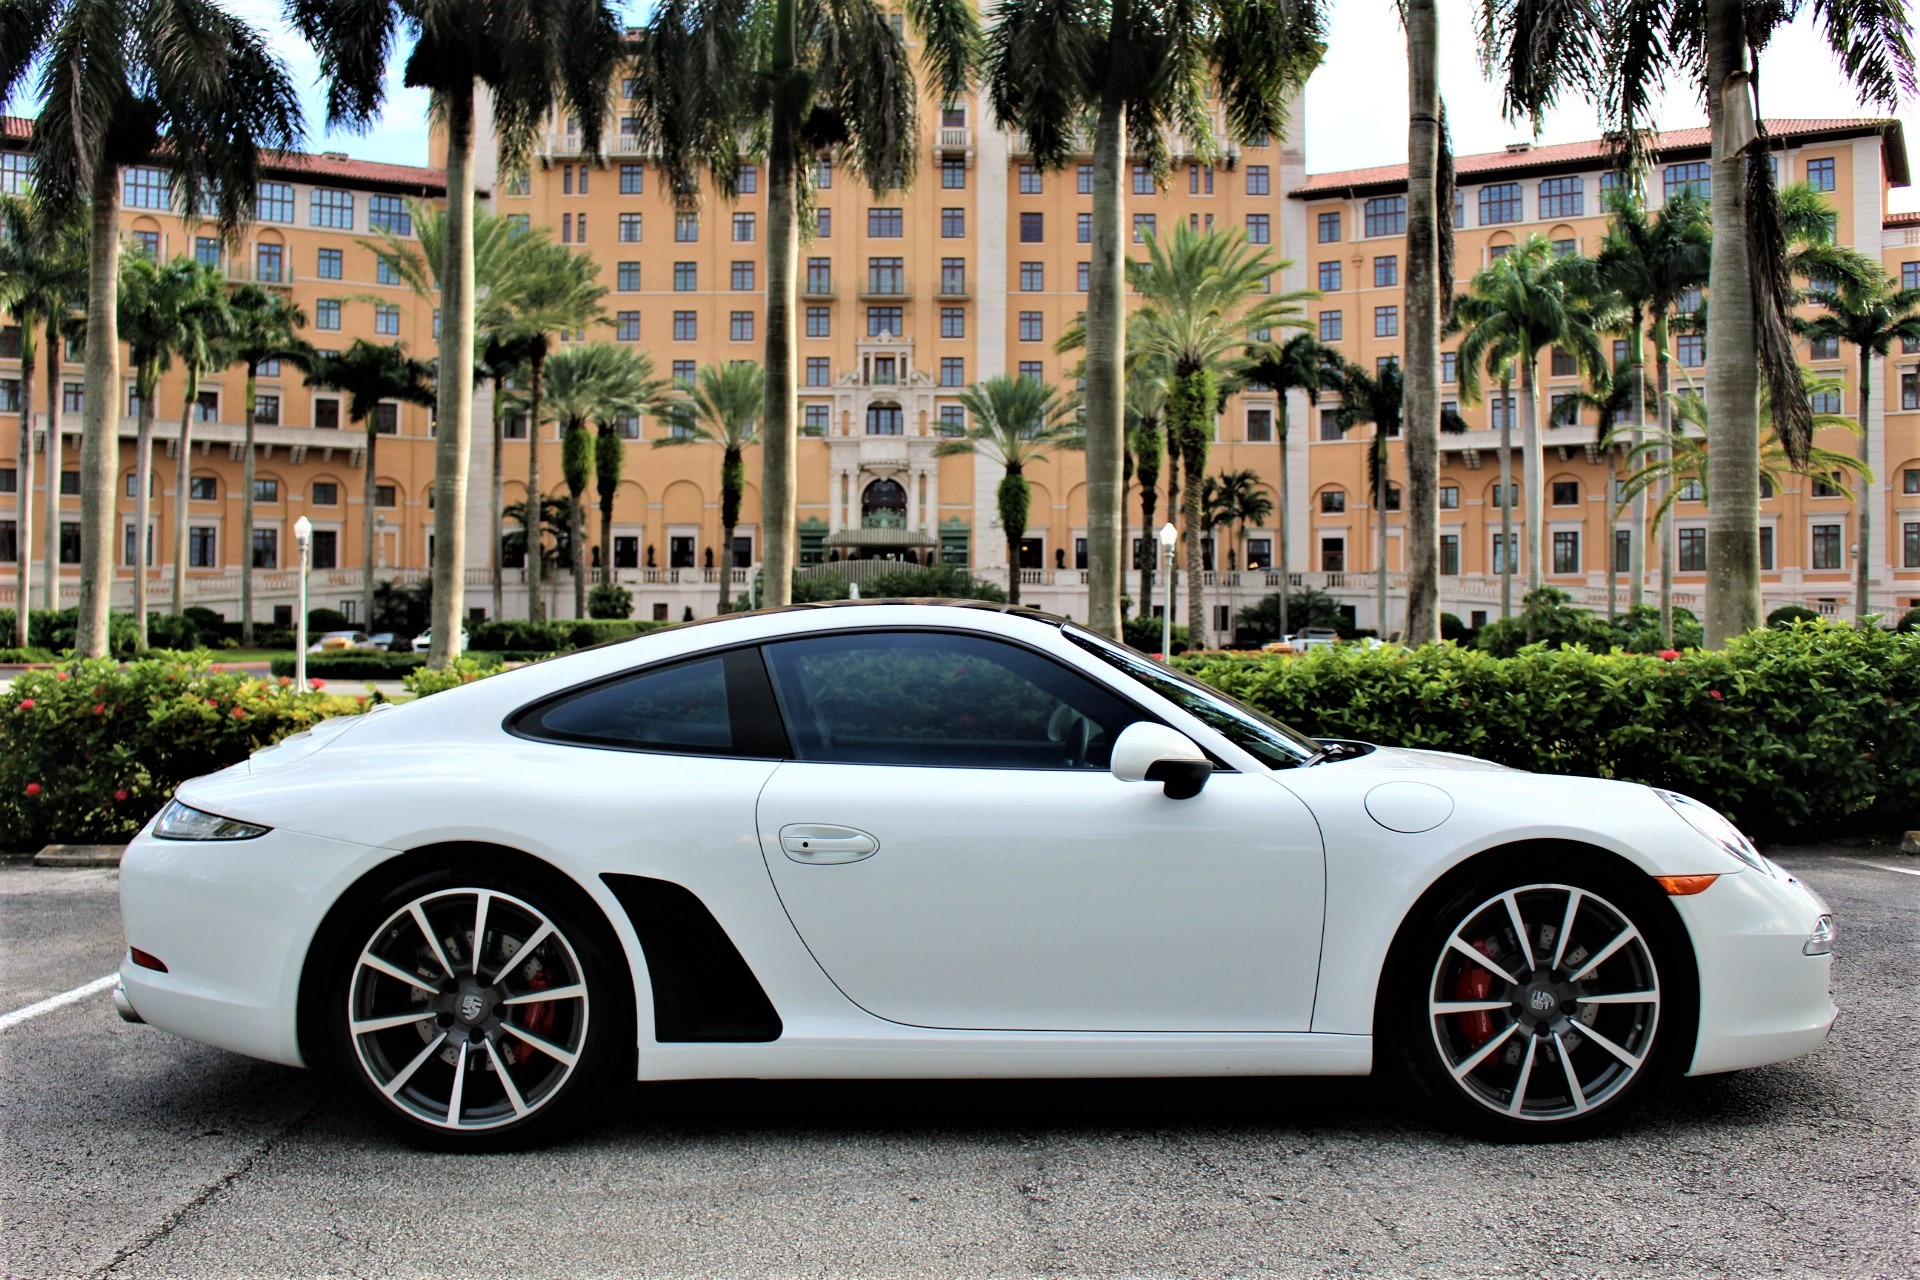 Used 2014 Porsche 911 Carrera S for sale Sold at The Gables Sports Cars in Miami FL 33146 3